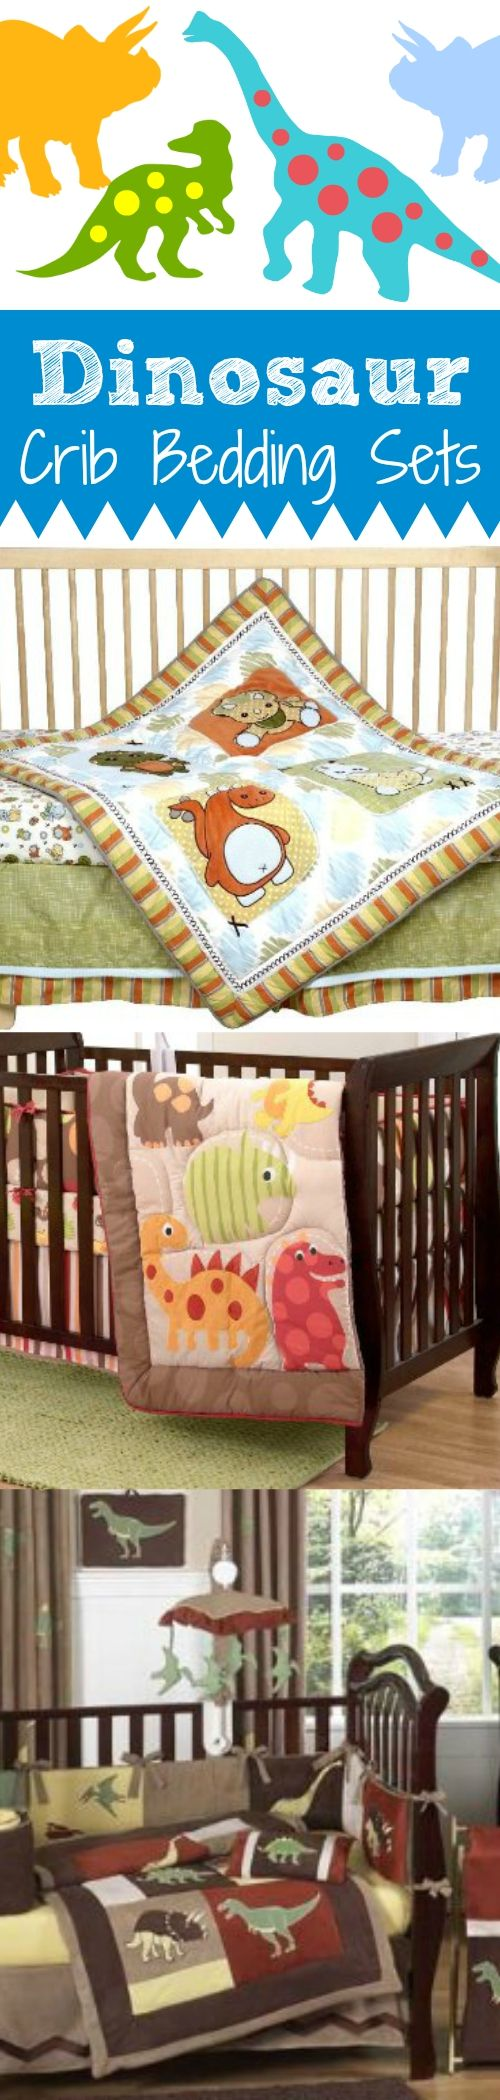 dinosaur crib bedding sets for the baby nursery baby